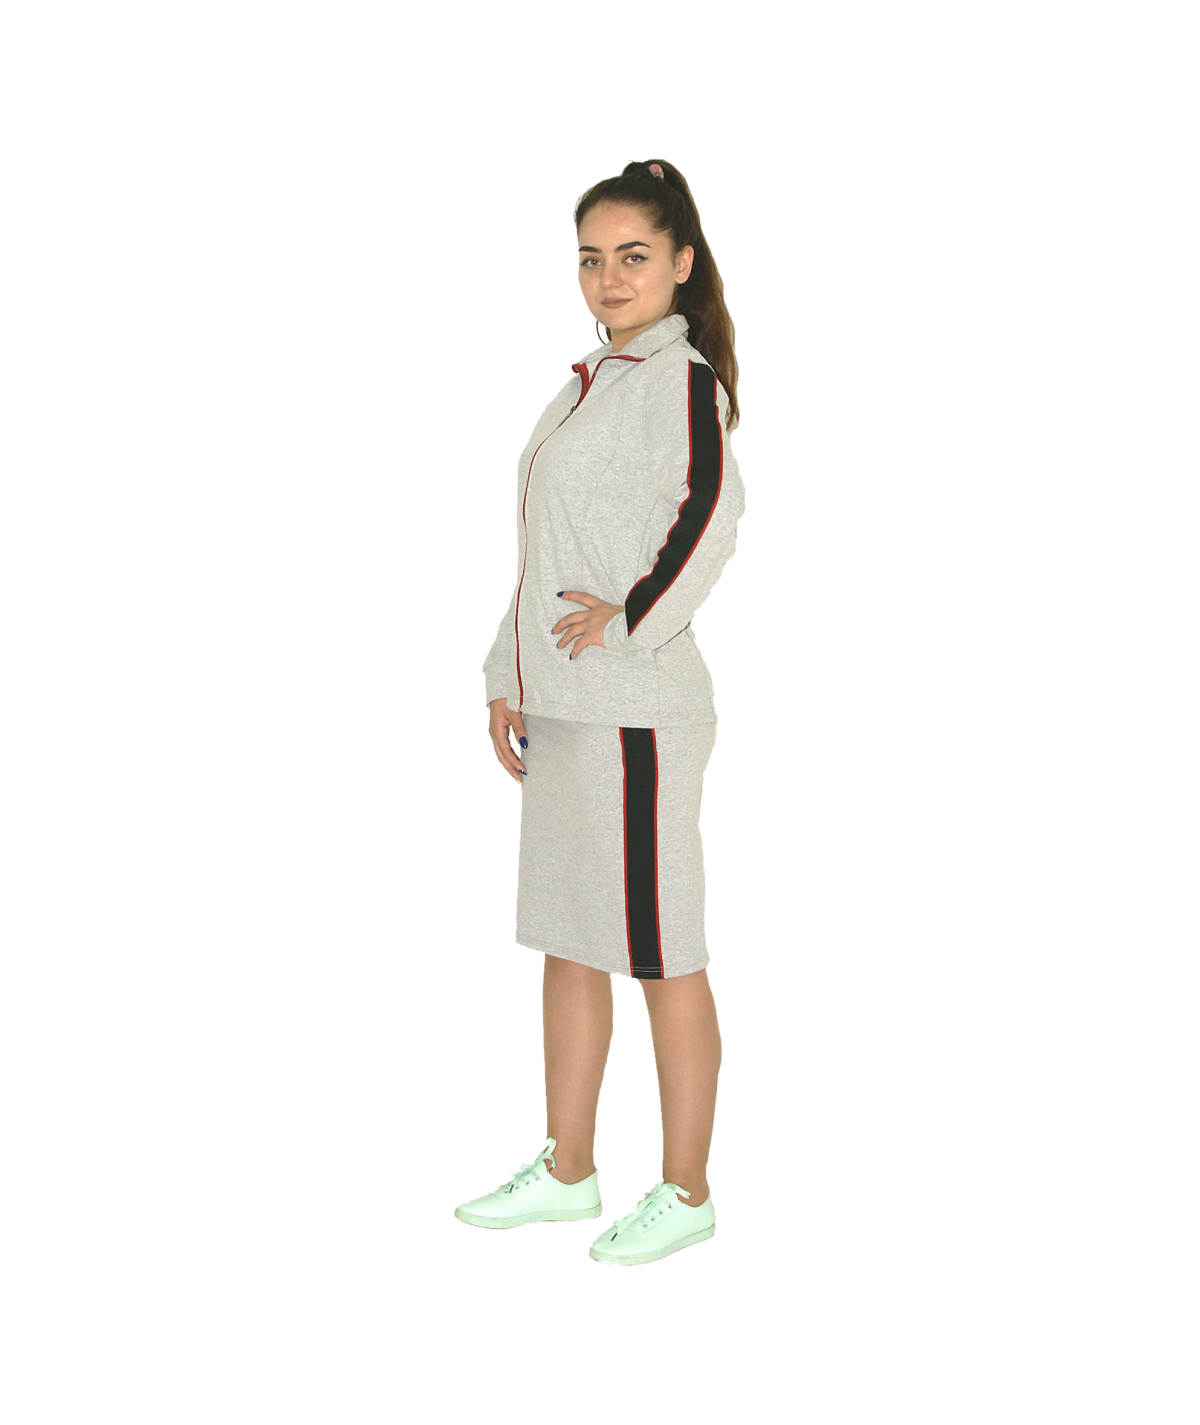 Tracksuit with a skirt